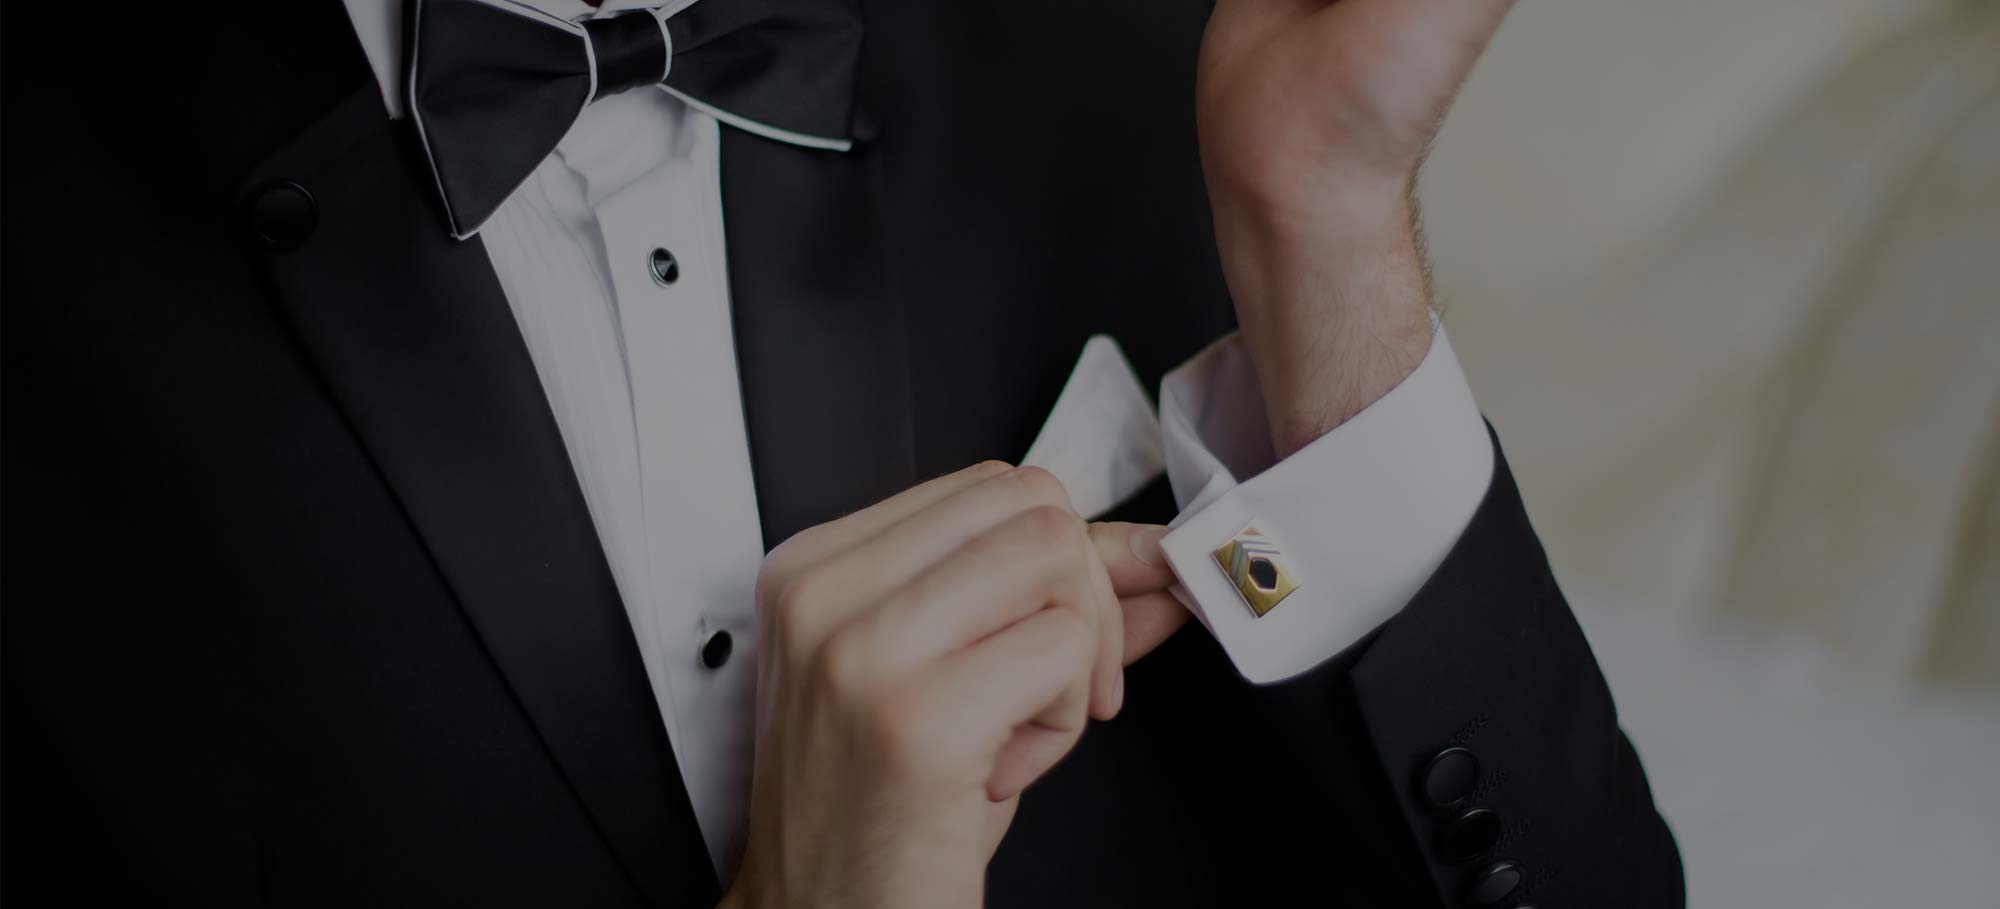 Designer Tuxedos To Make Any man like Bond